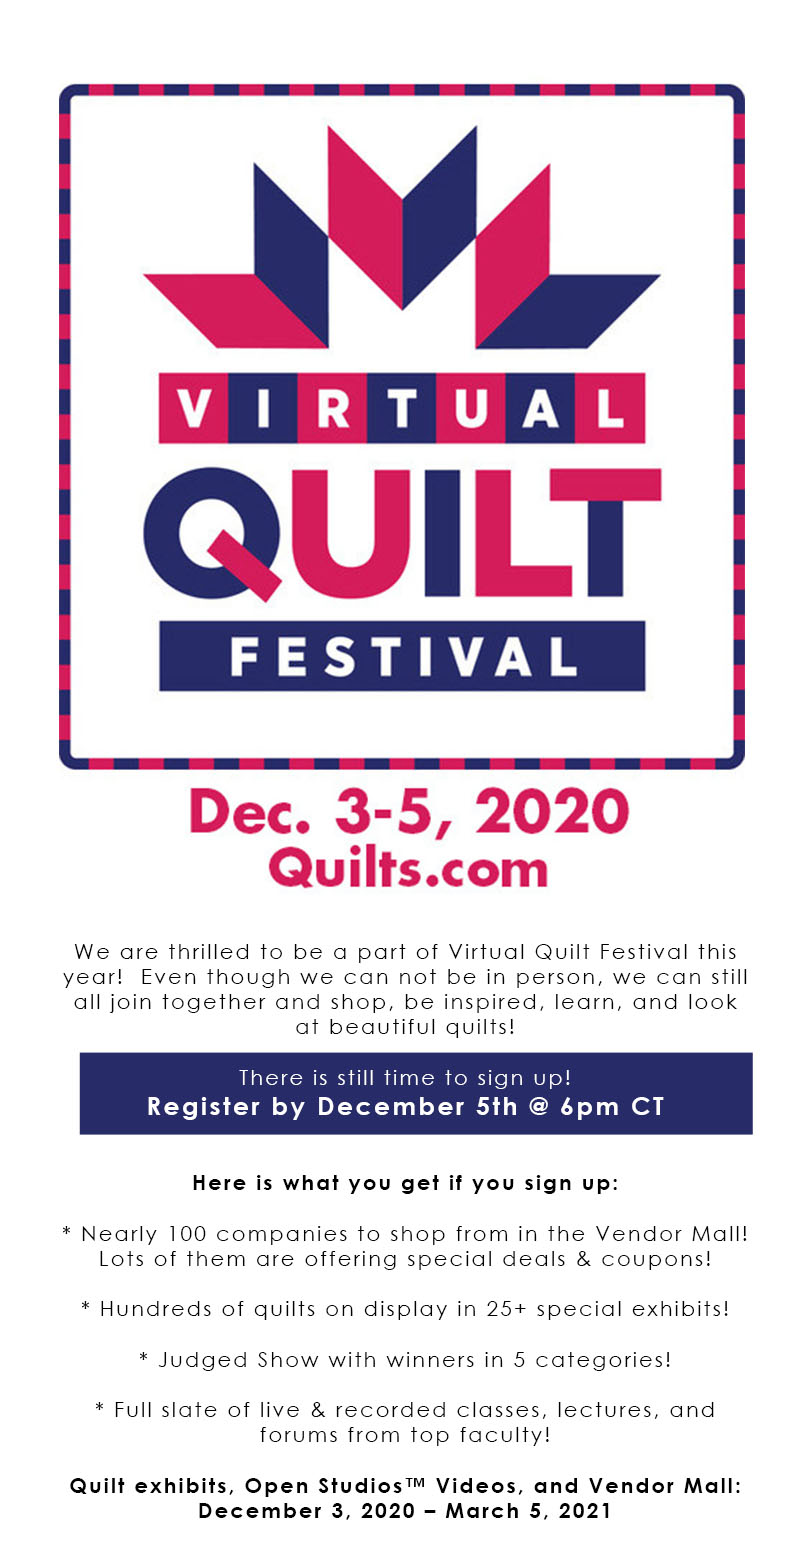 We are thrilled to be a part of Virtual Quilt Festival this year!  Even though we can not be in person, we can still all join together and shop, be inspired, learn, and look at beautiful quilts!